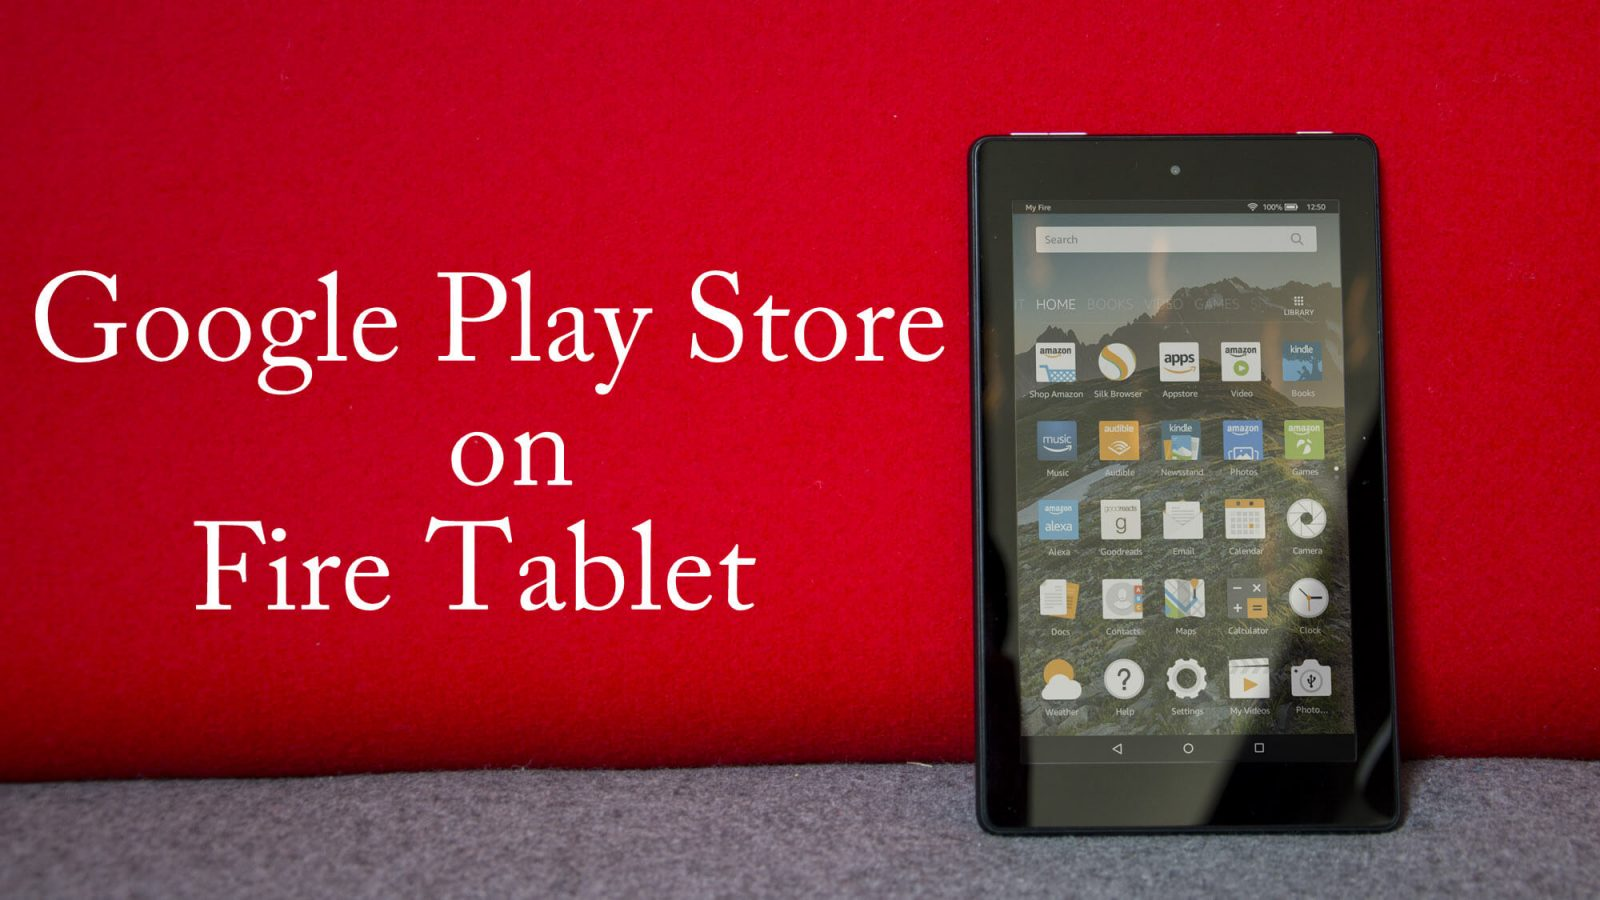 Google Play on Amazon Fire Tablet